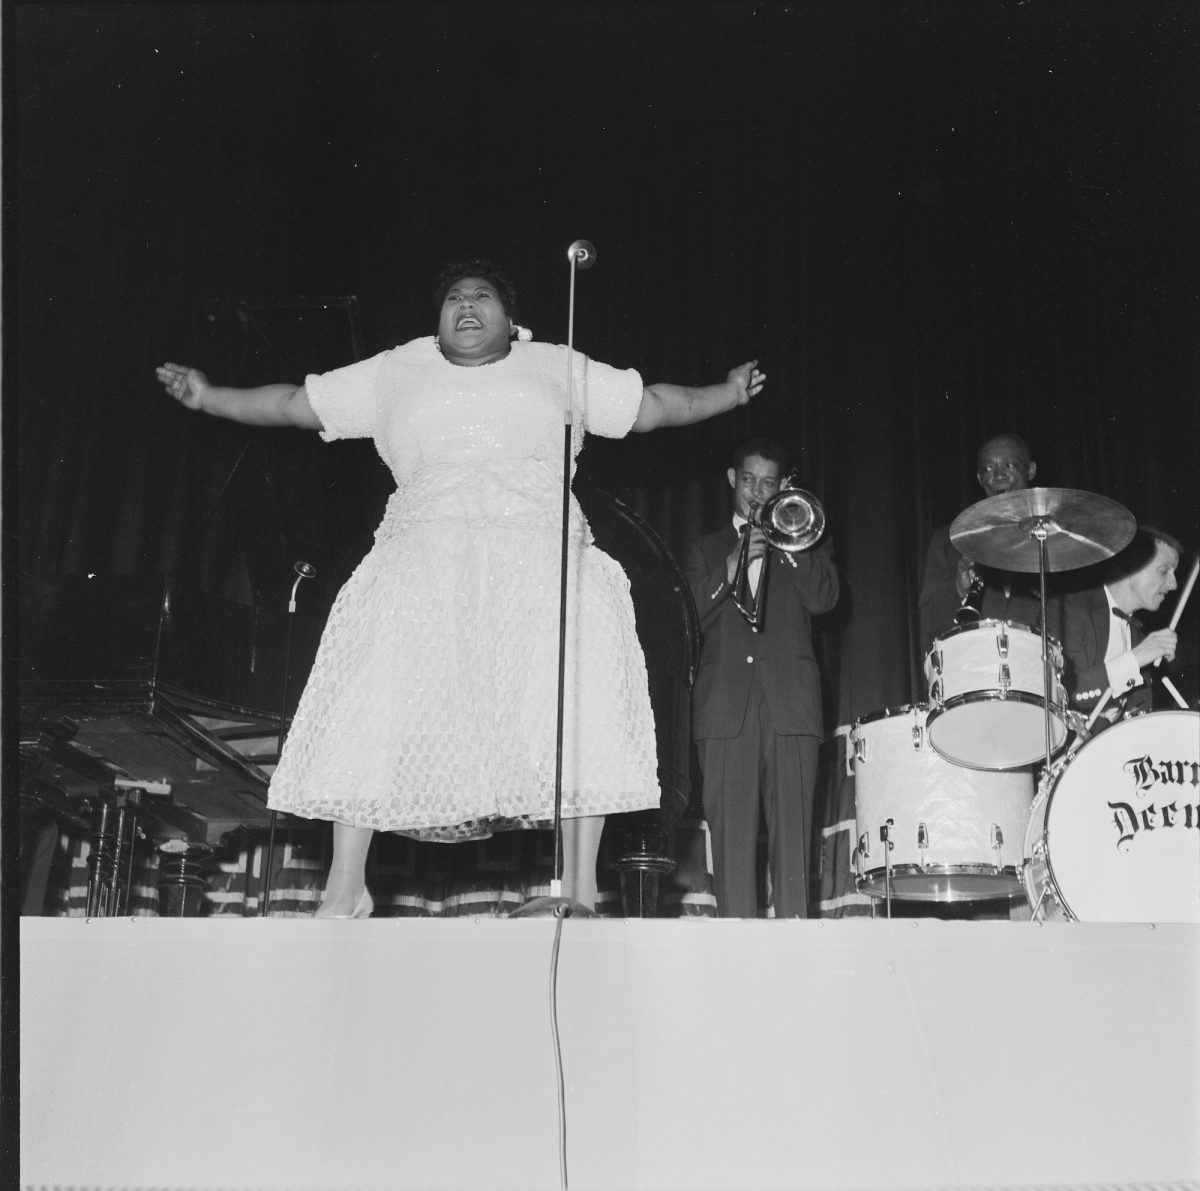 Barrett Deems performs with Louis Armstrong band and Velma Middleton in Oslo, Norway in 1955.